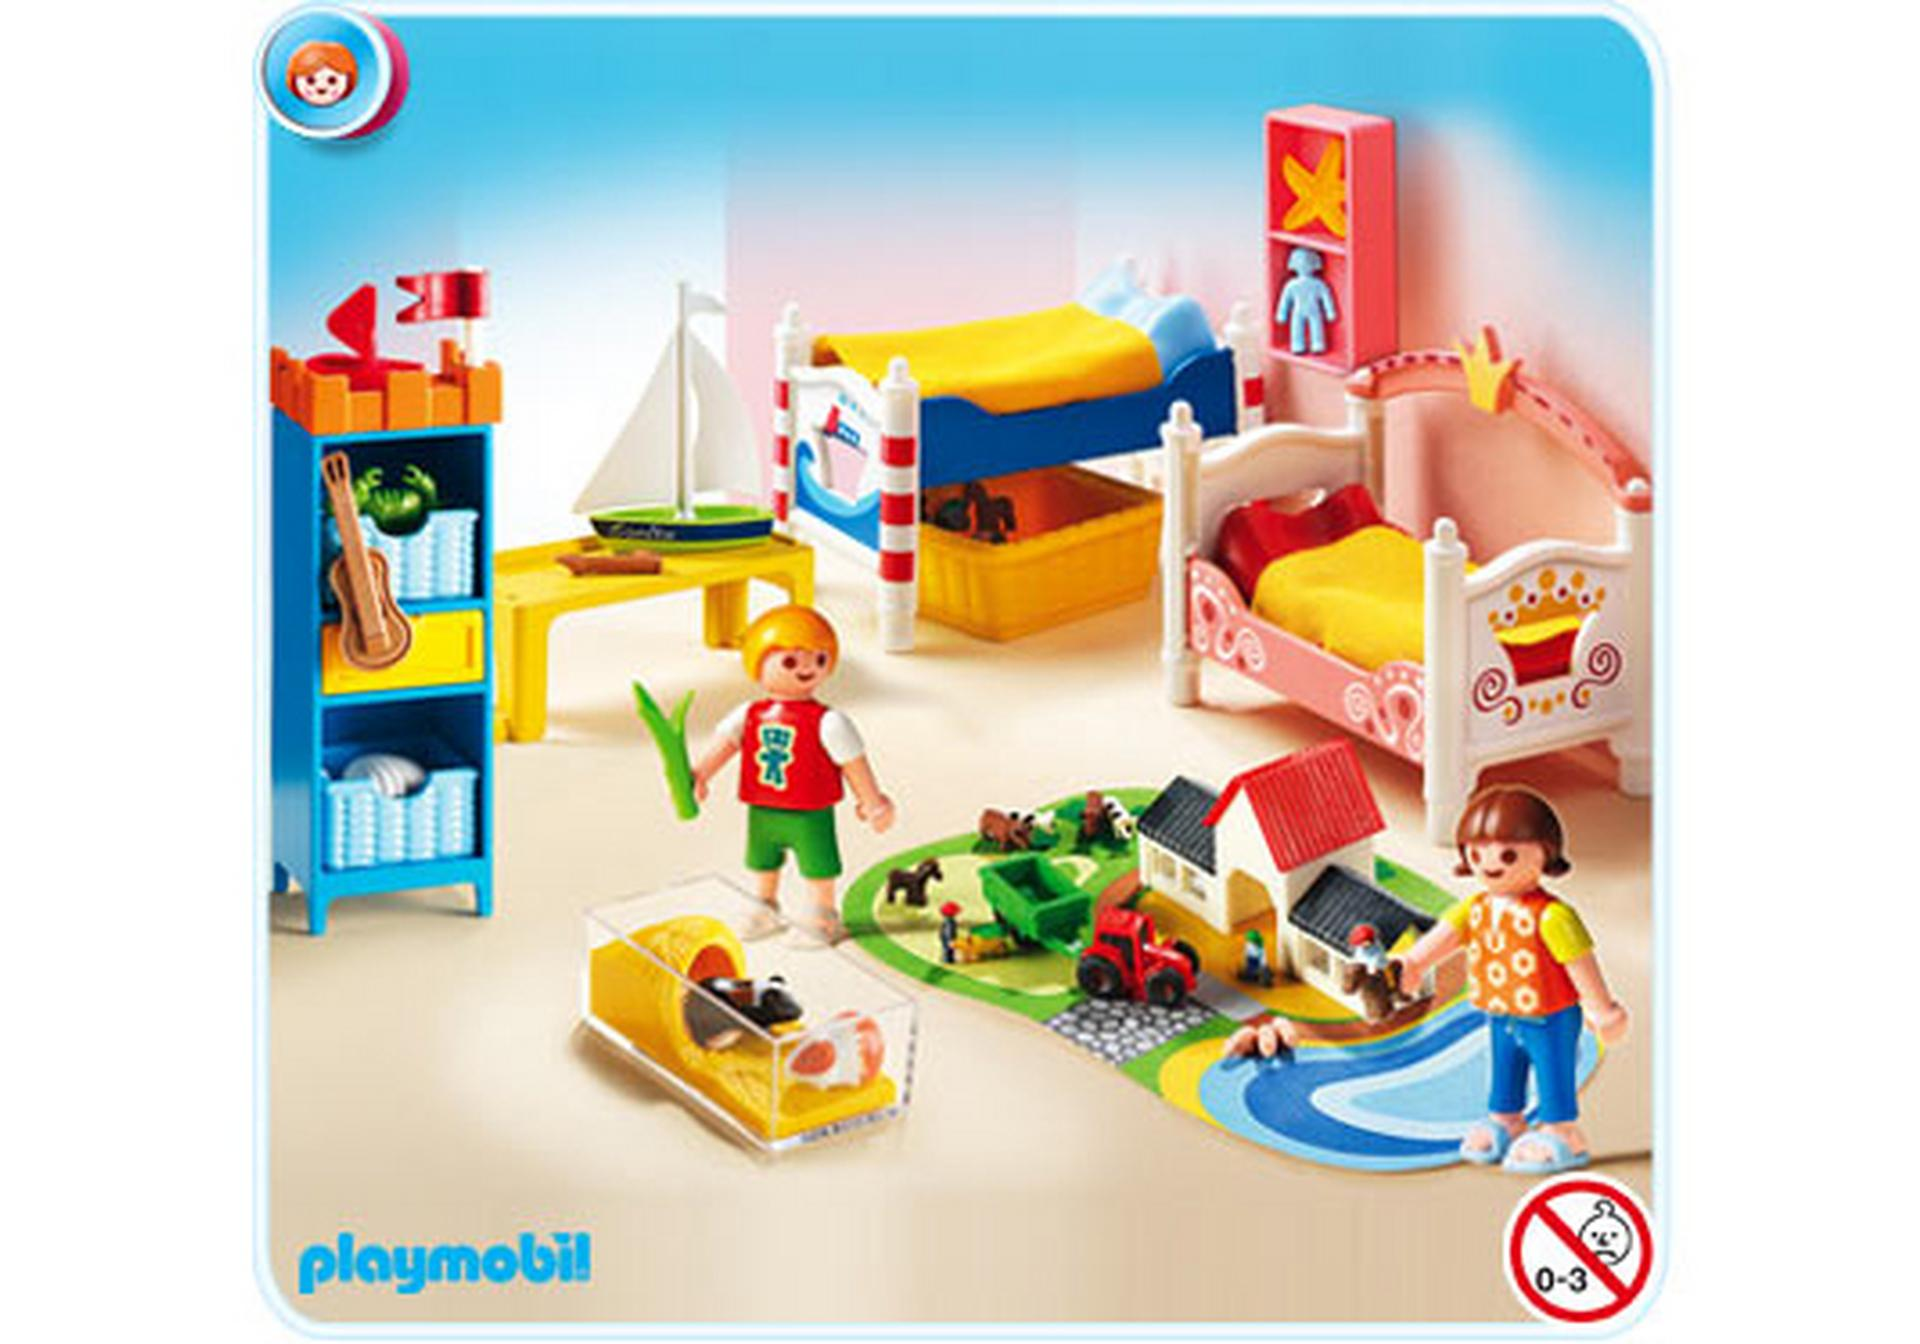 Fr hliches kinderzimmer 5333 a playmobil deutschland for Kinderzimmer playmobil